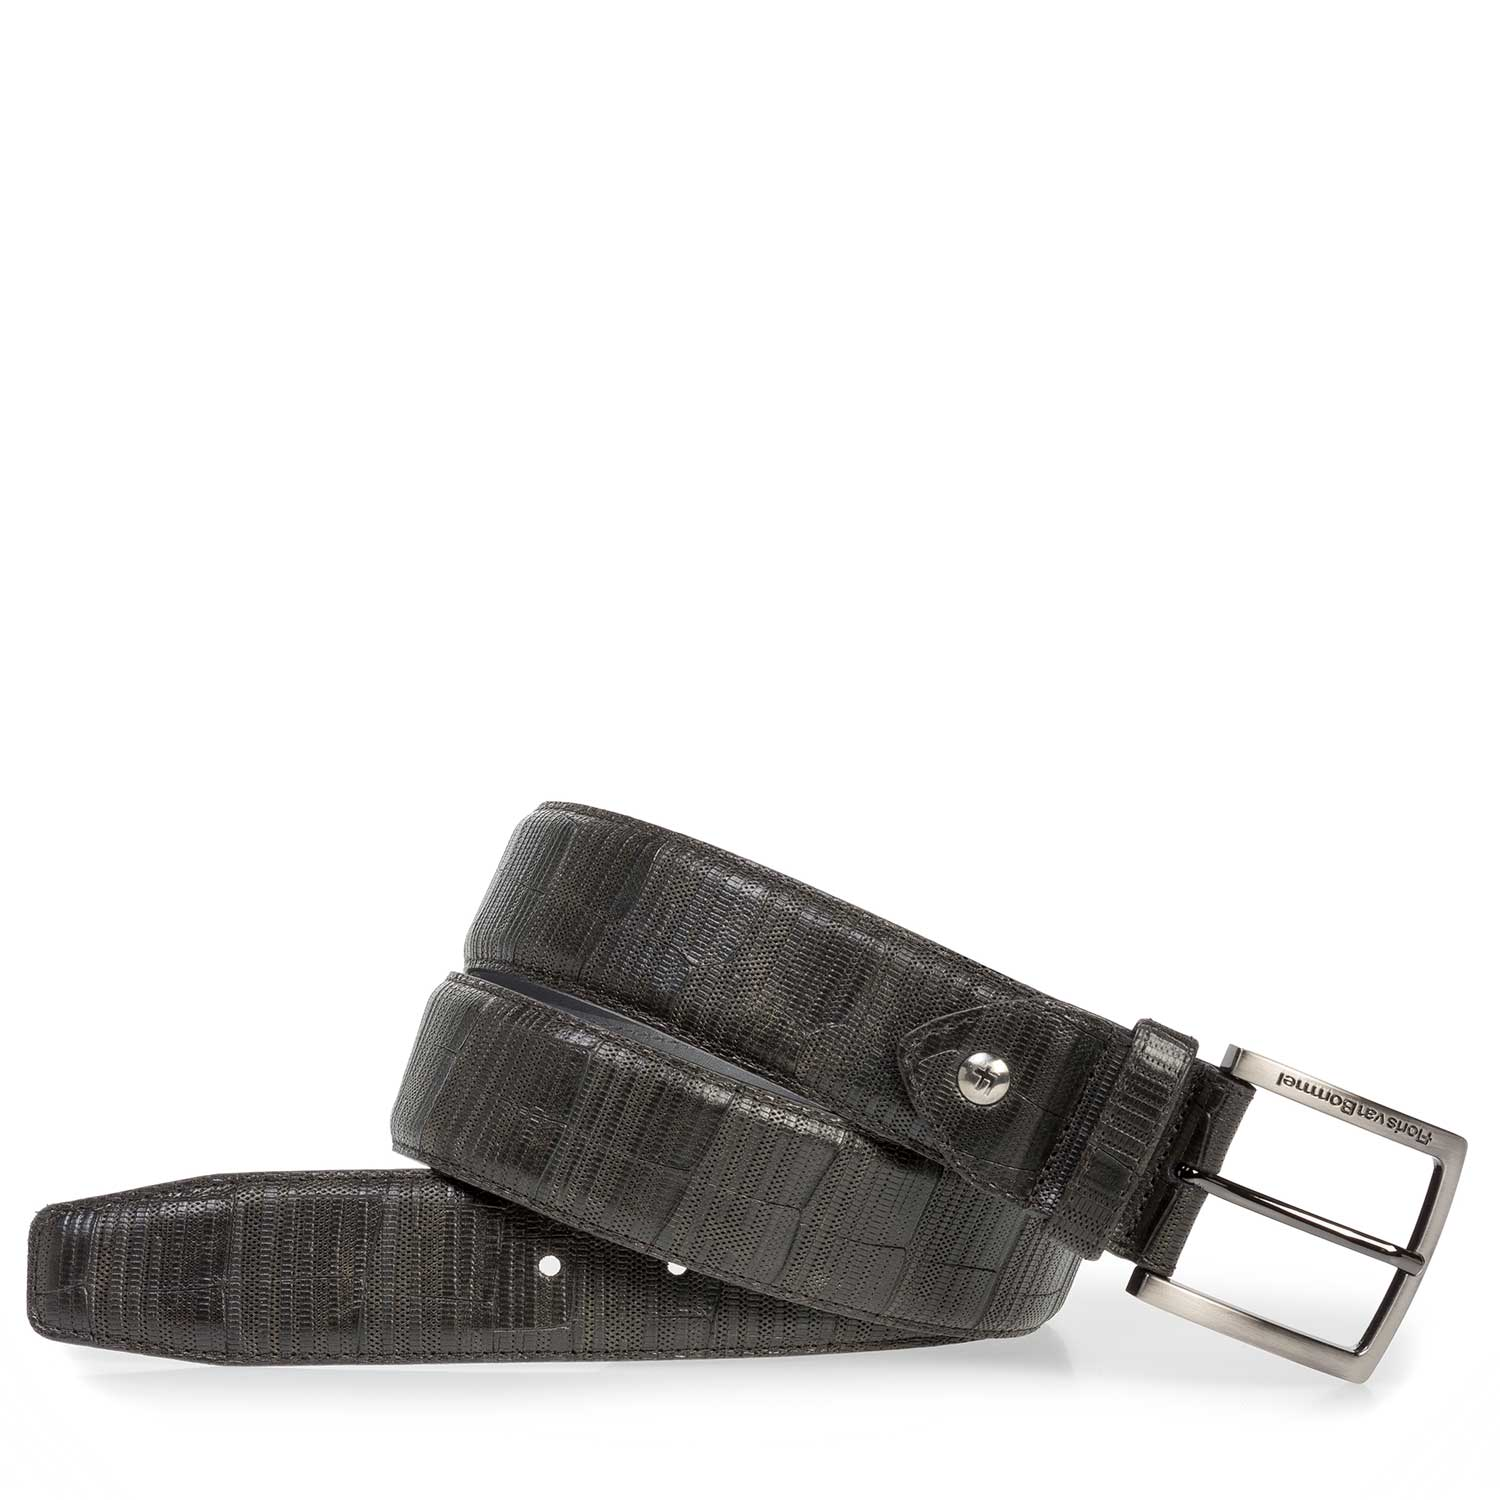 75202/39 - Dark green leather belt with print